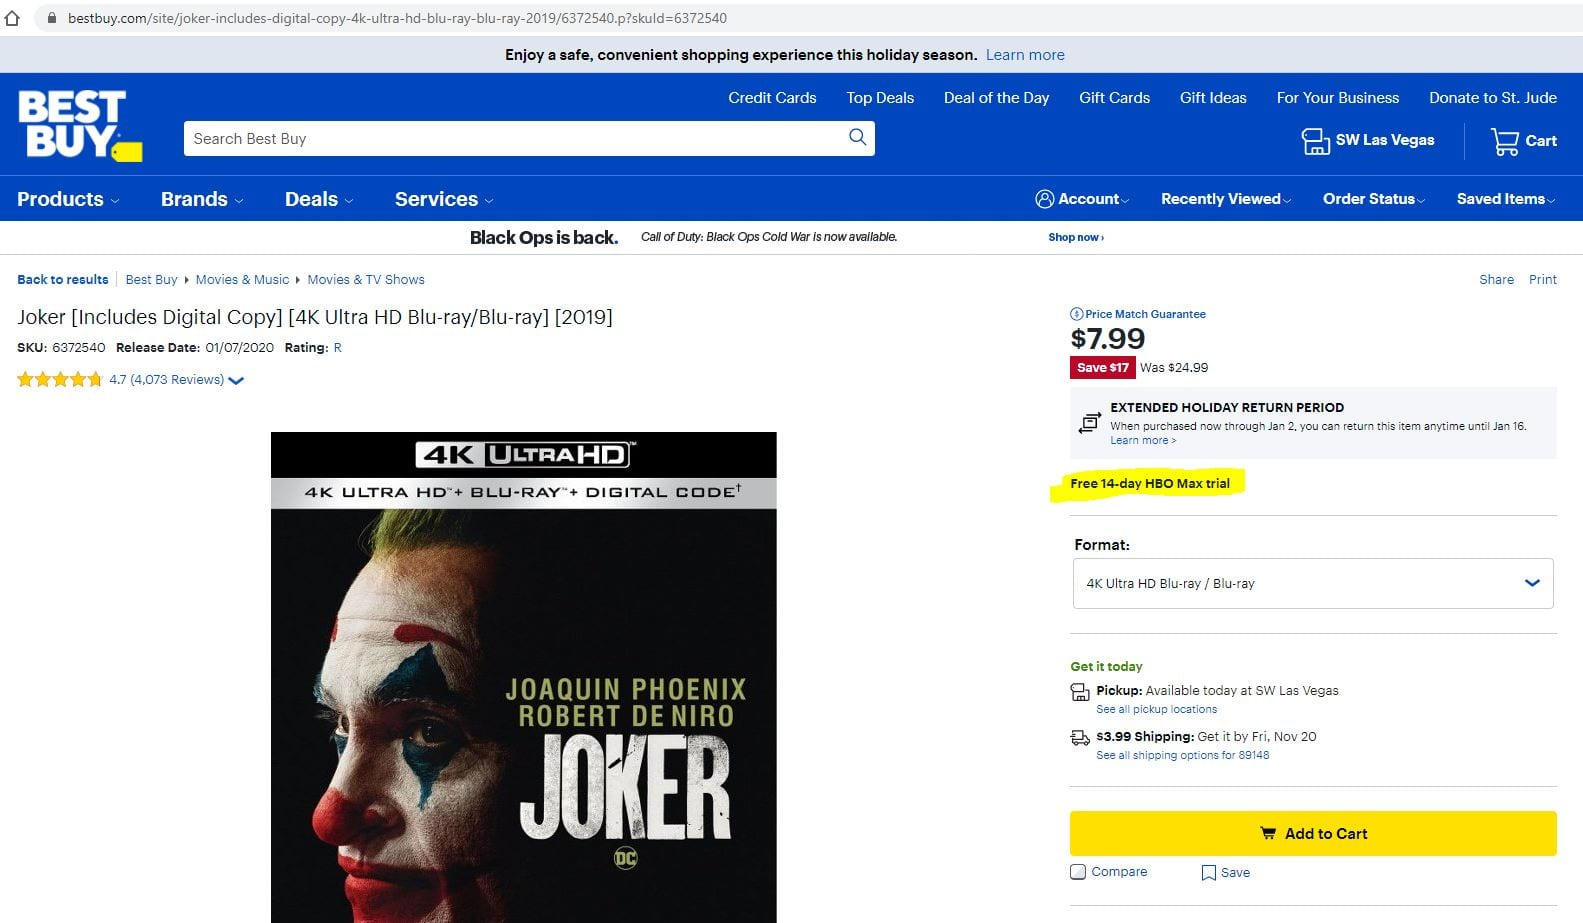 BB Joker 4K includes 14 day HBO Max trial $8 (Blu-ray $6)